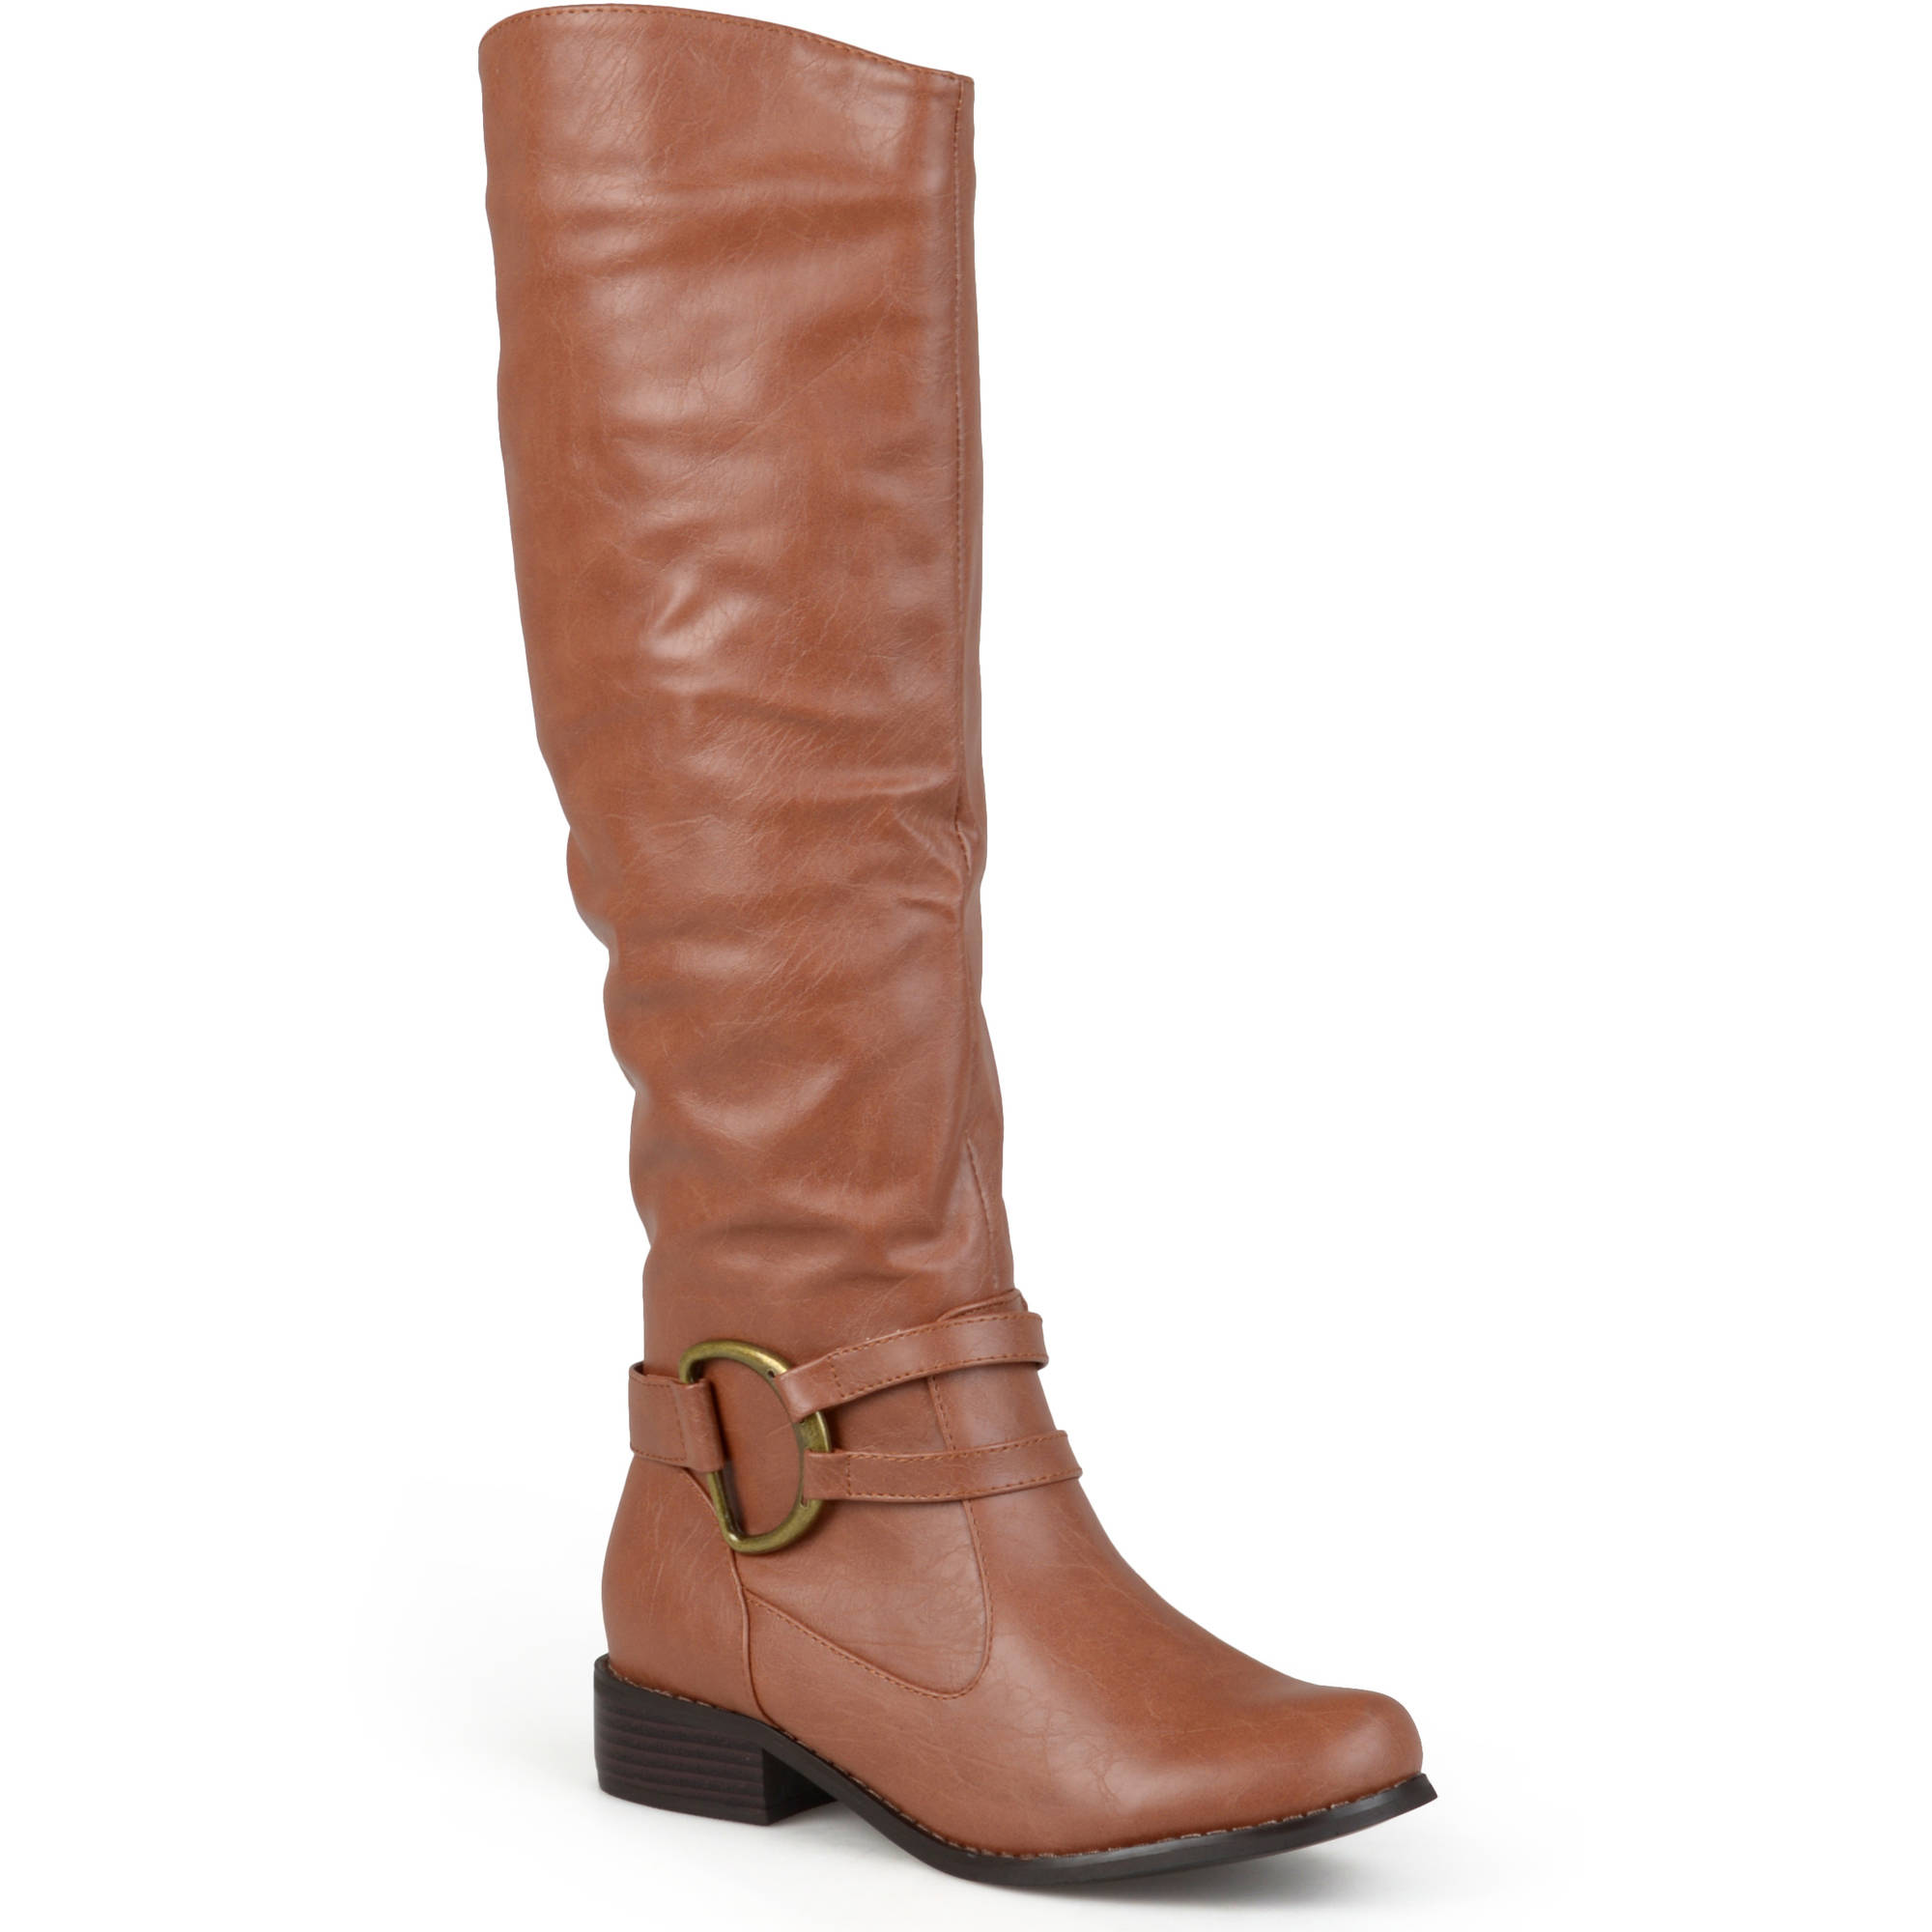 Womens Faded Glory Riding Boot - Walmart.com